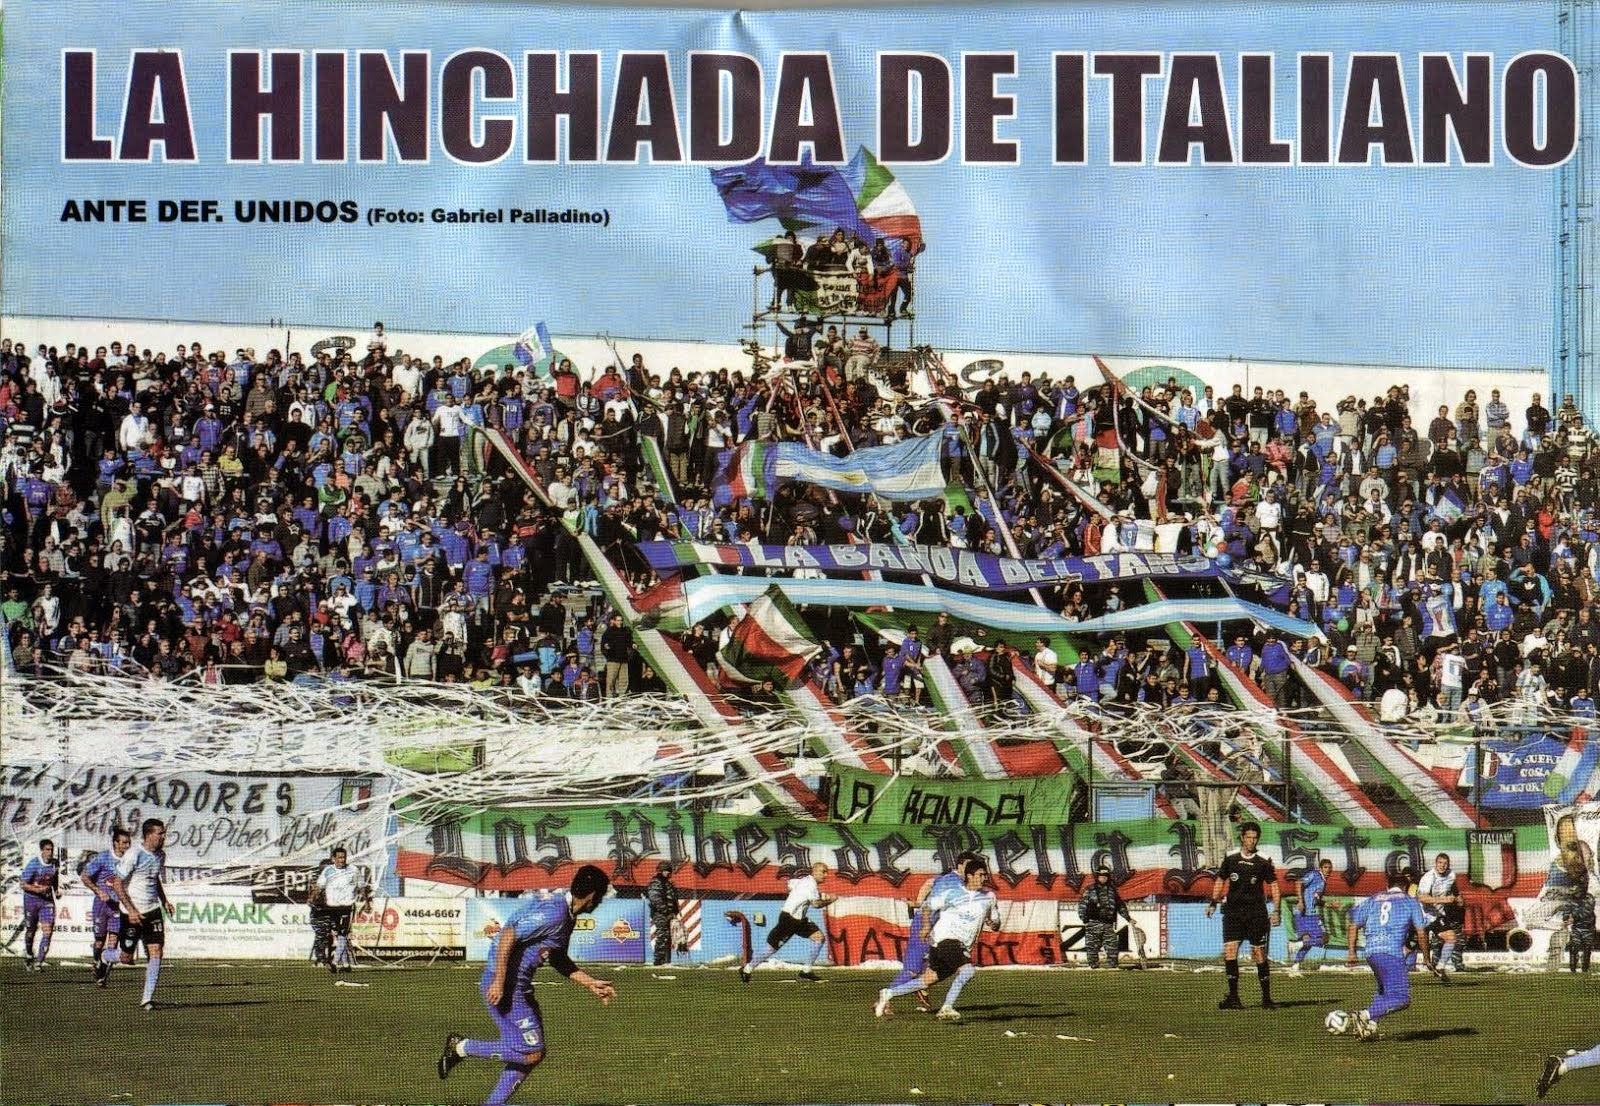 LA HINCHADA